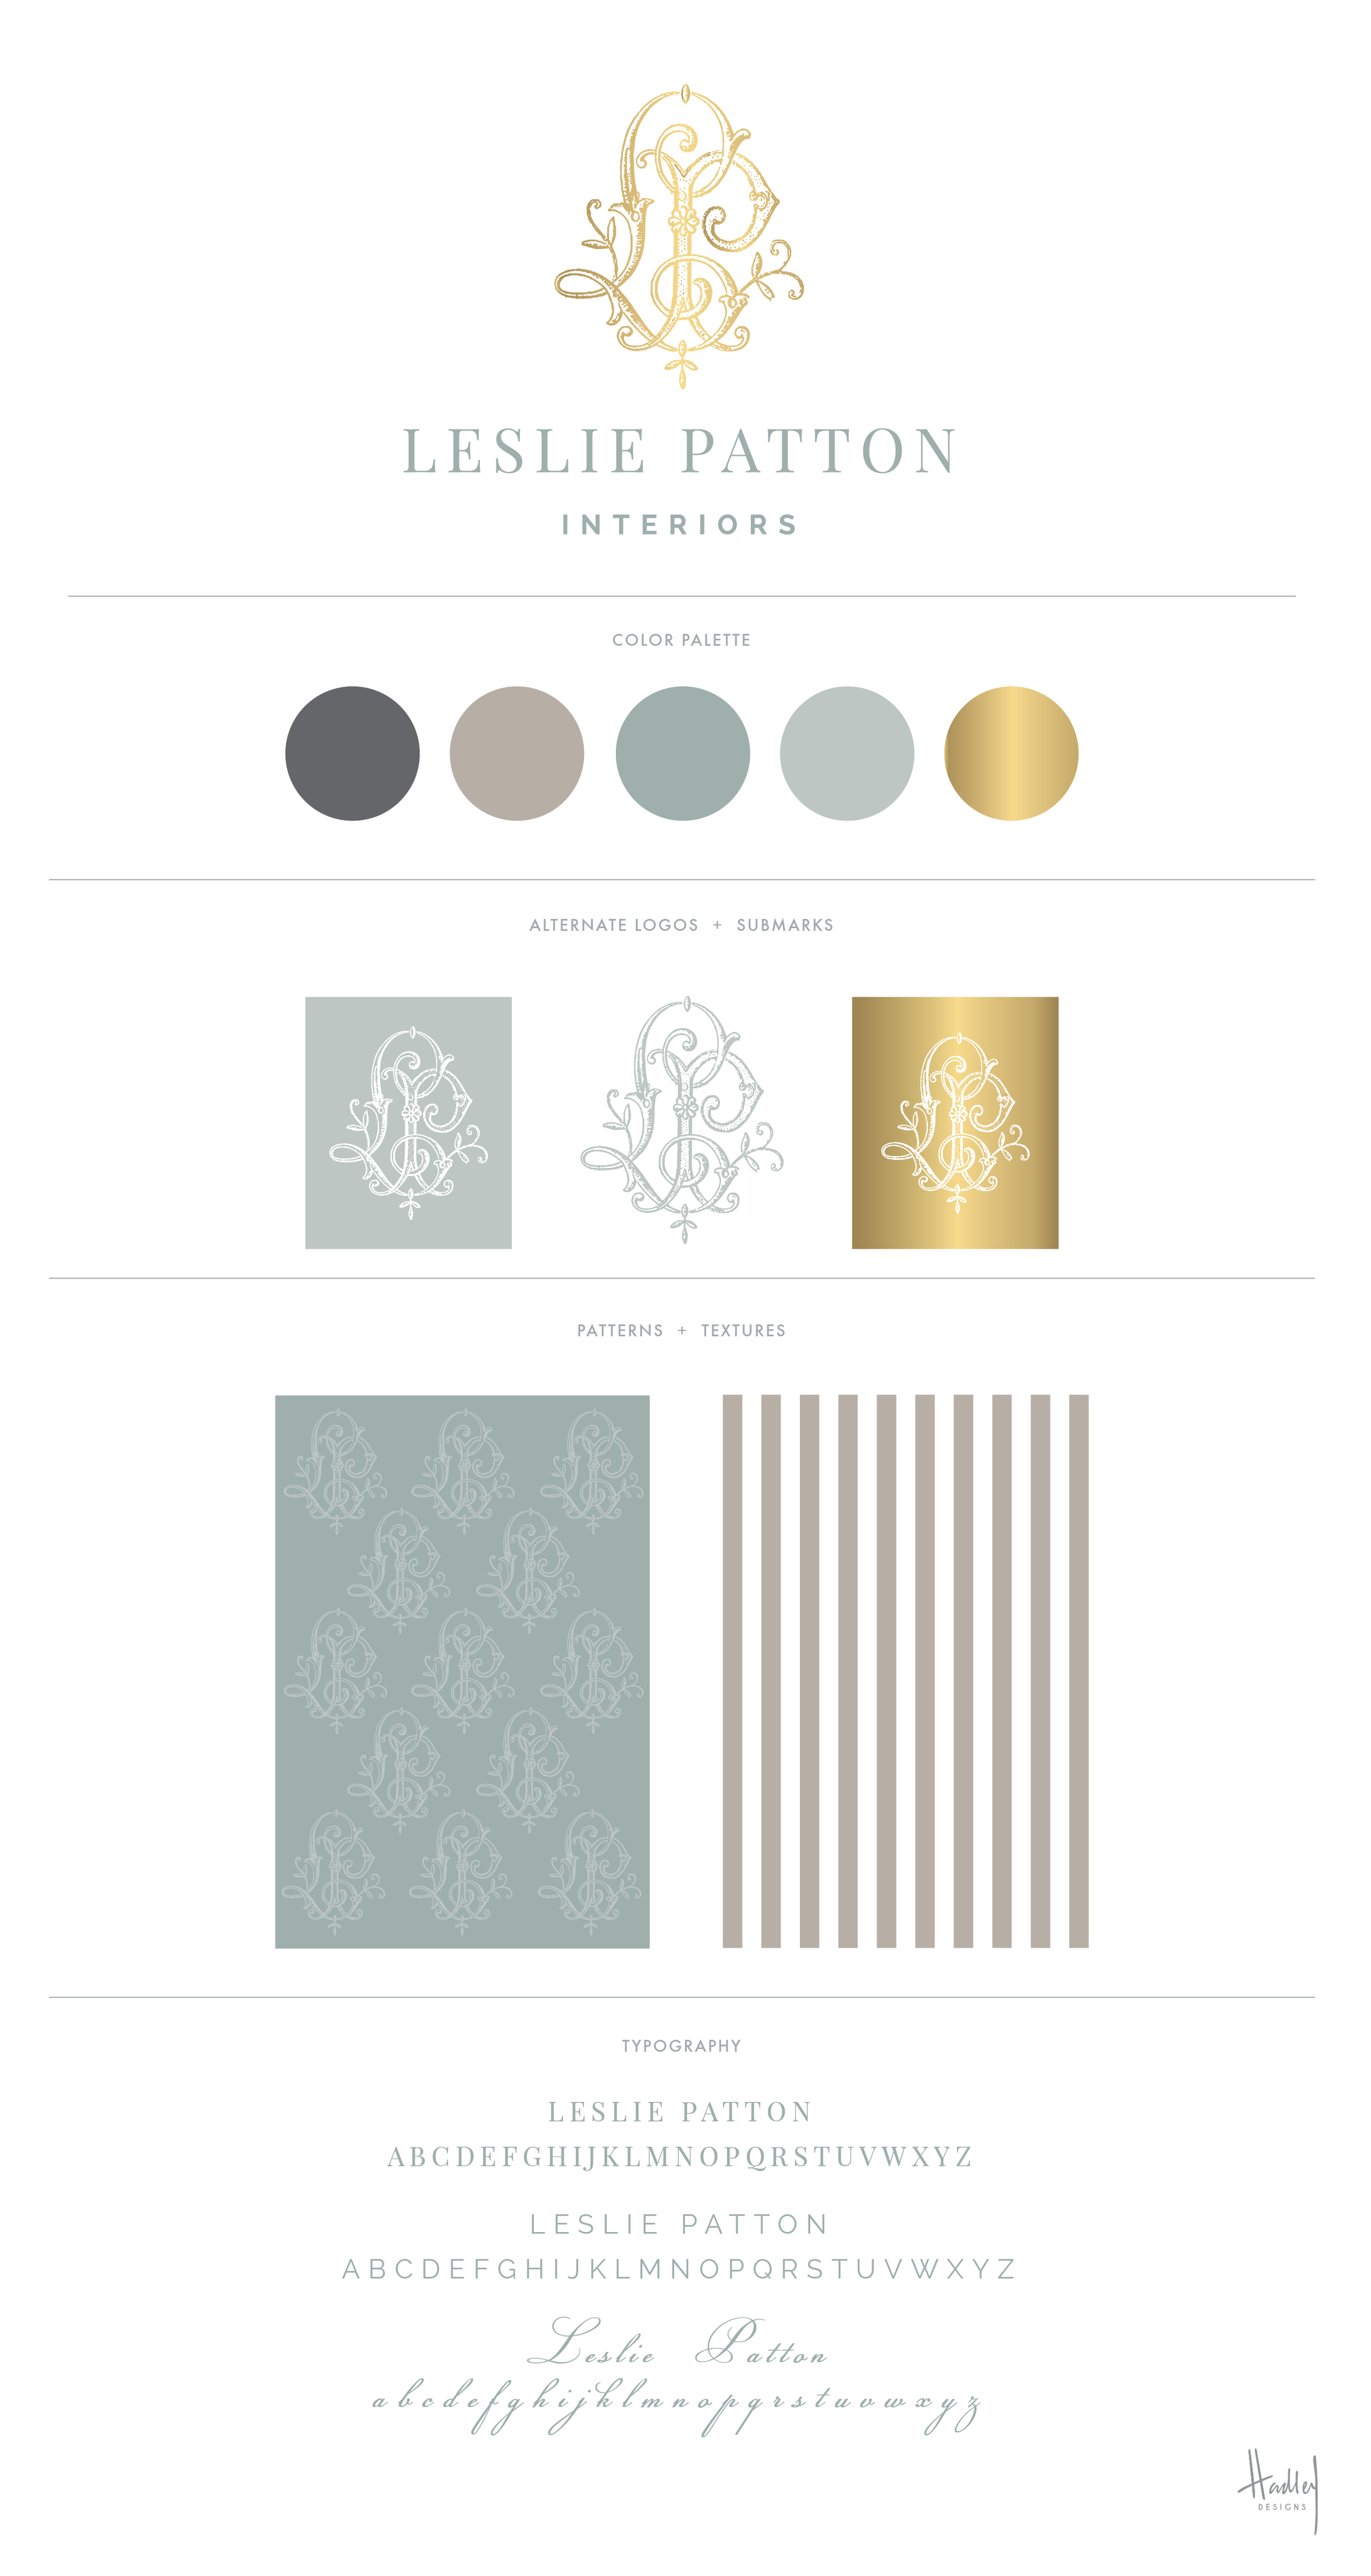 New branding and stationery for the talented Leslie Patton Interiors, located in Jackson, Tennessee. Leslie is an absolute JOY to work with, and I can't wait to get my hands on these printed pieces very soon.New website in the works! Stay tuned...